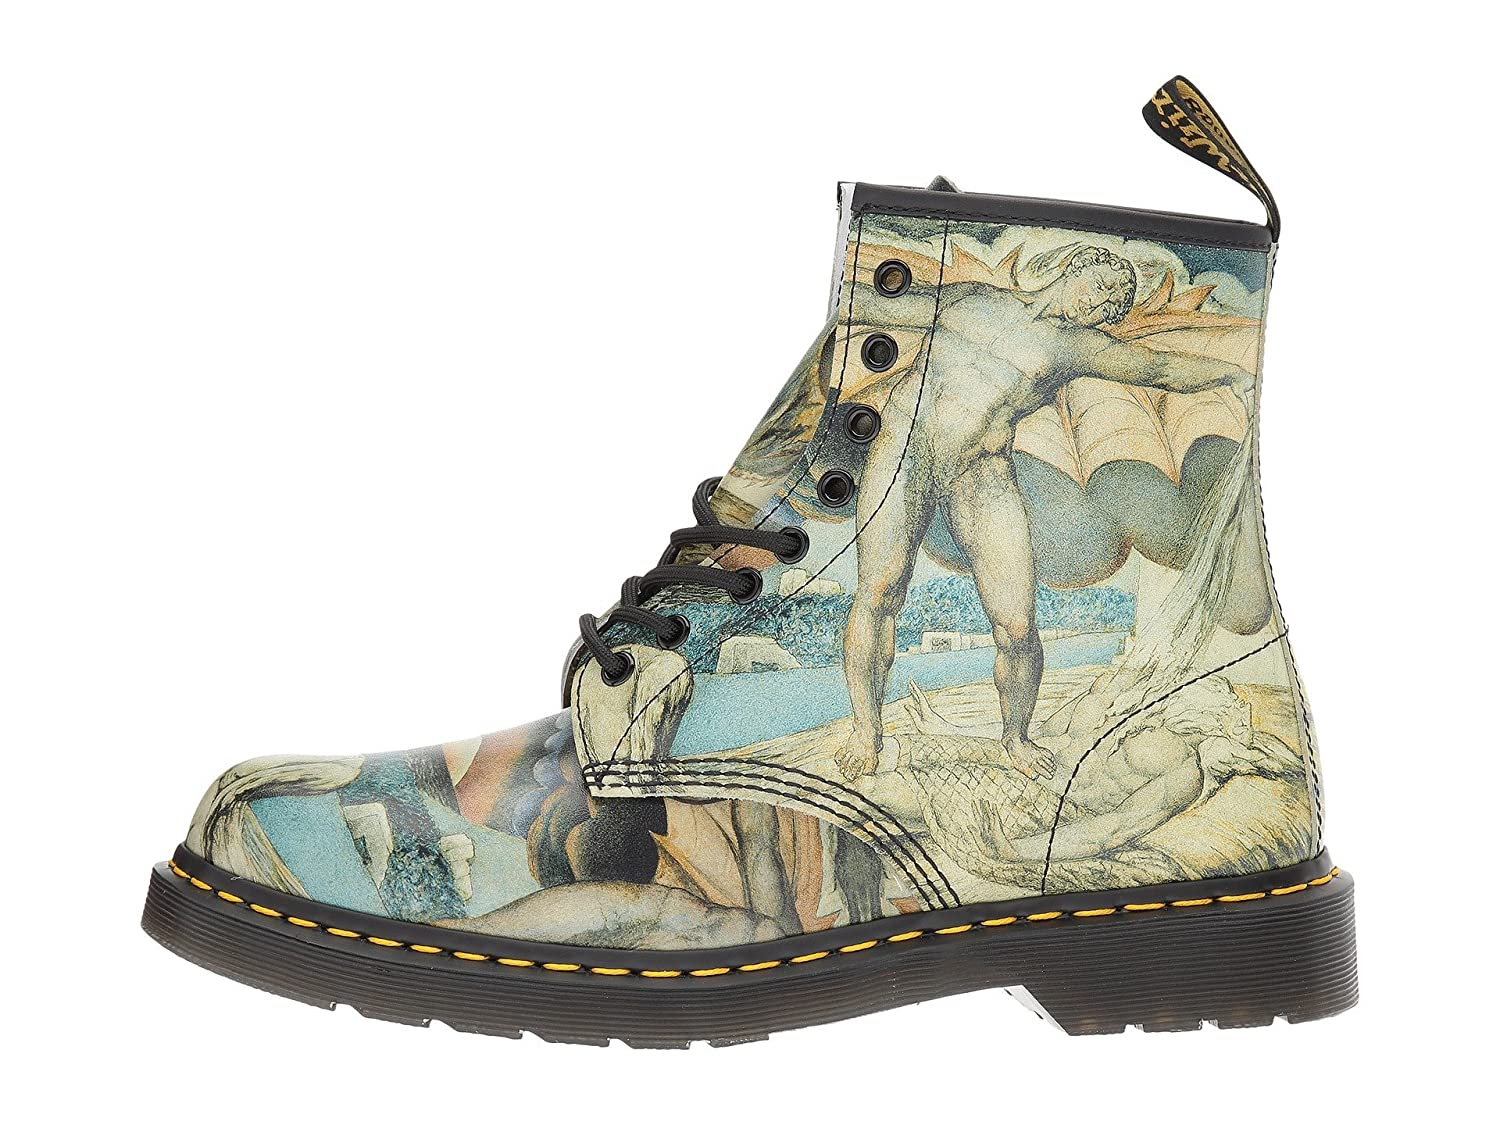 Dr. Martens 1460 22873102, Multi William Blake 22873102, 1460 Boots - d4229f